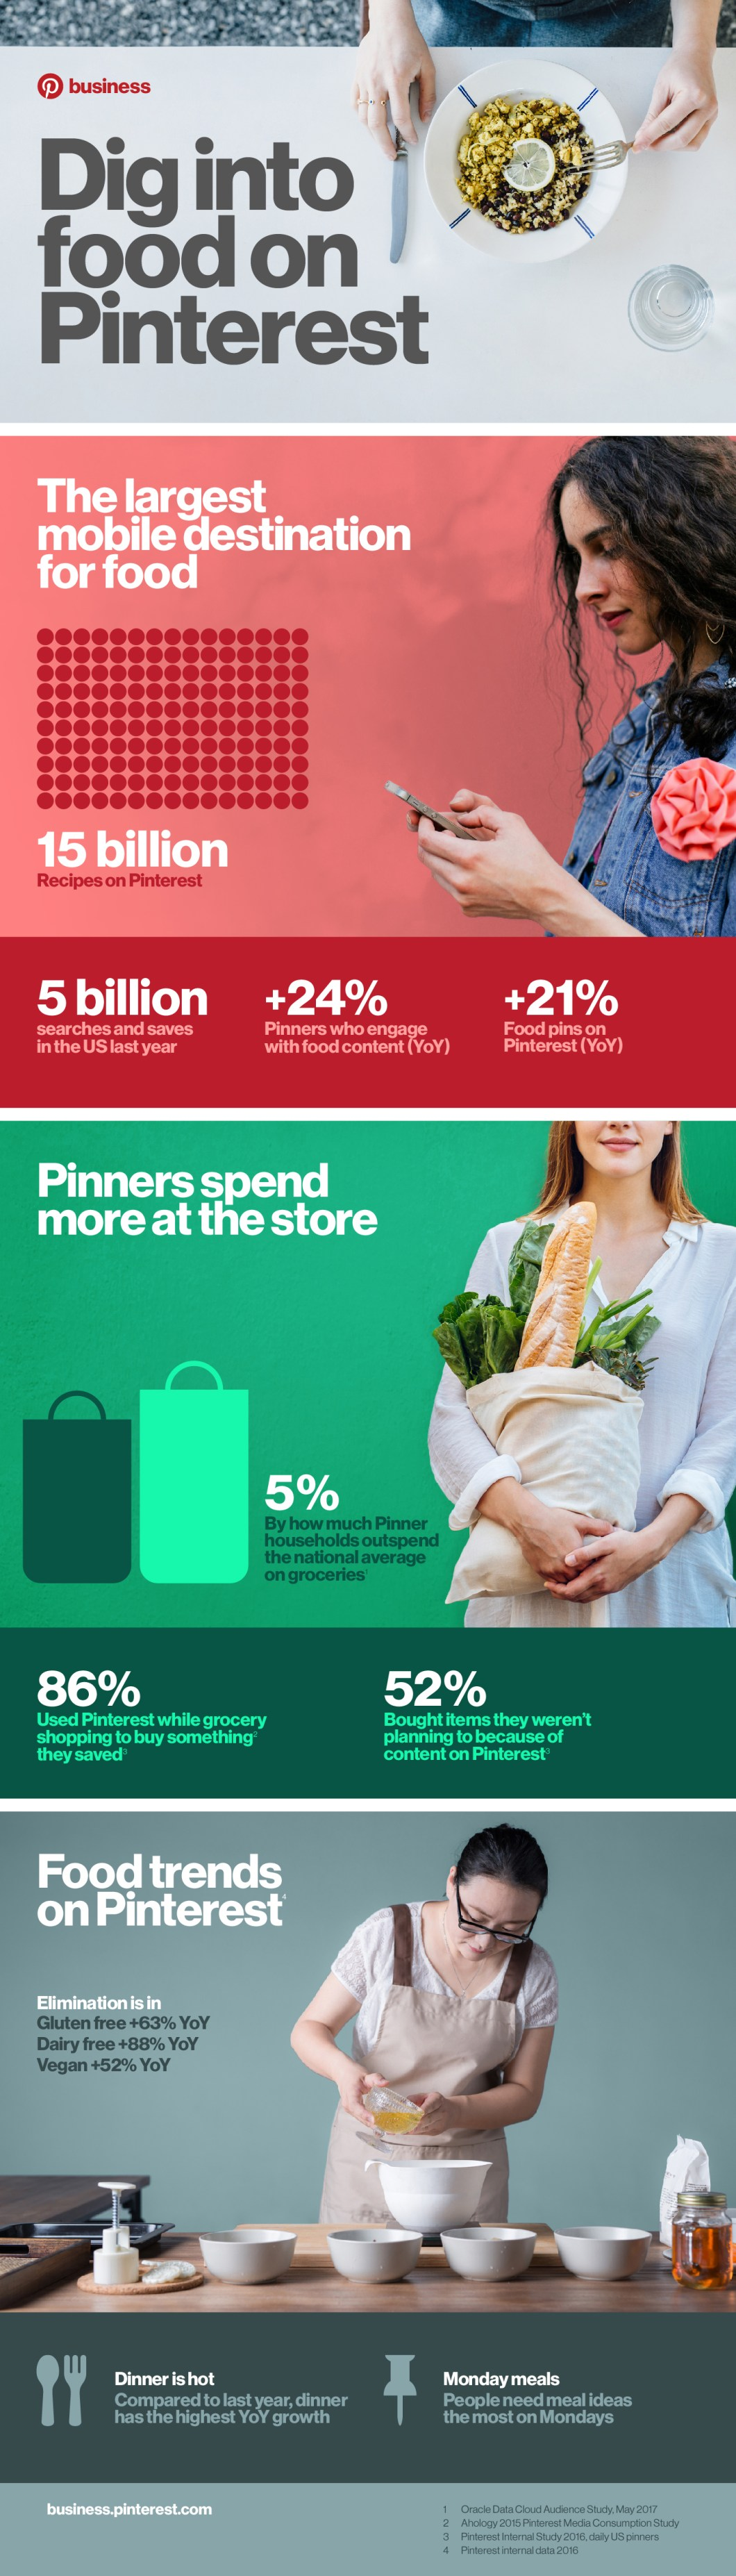 Pinterest Is The Perfect Go-To Place For Recipes - Infographic